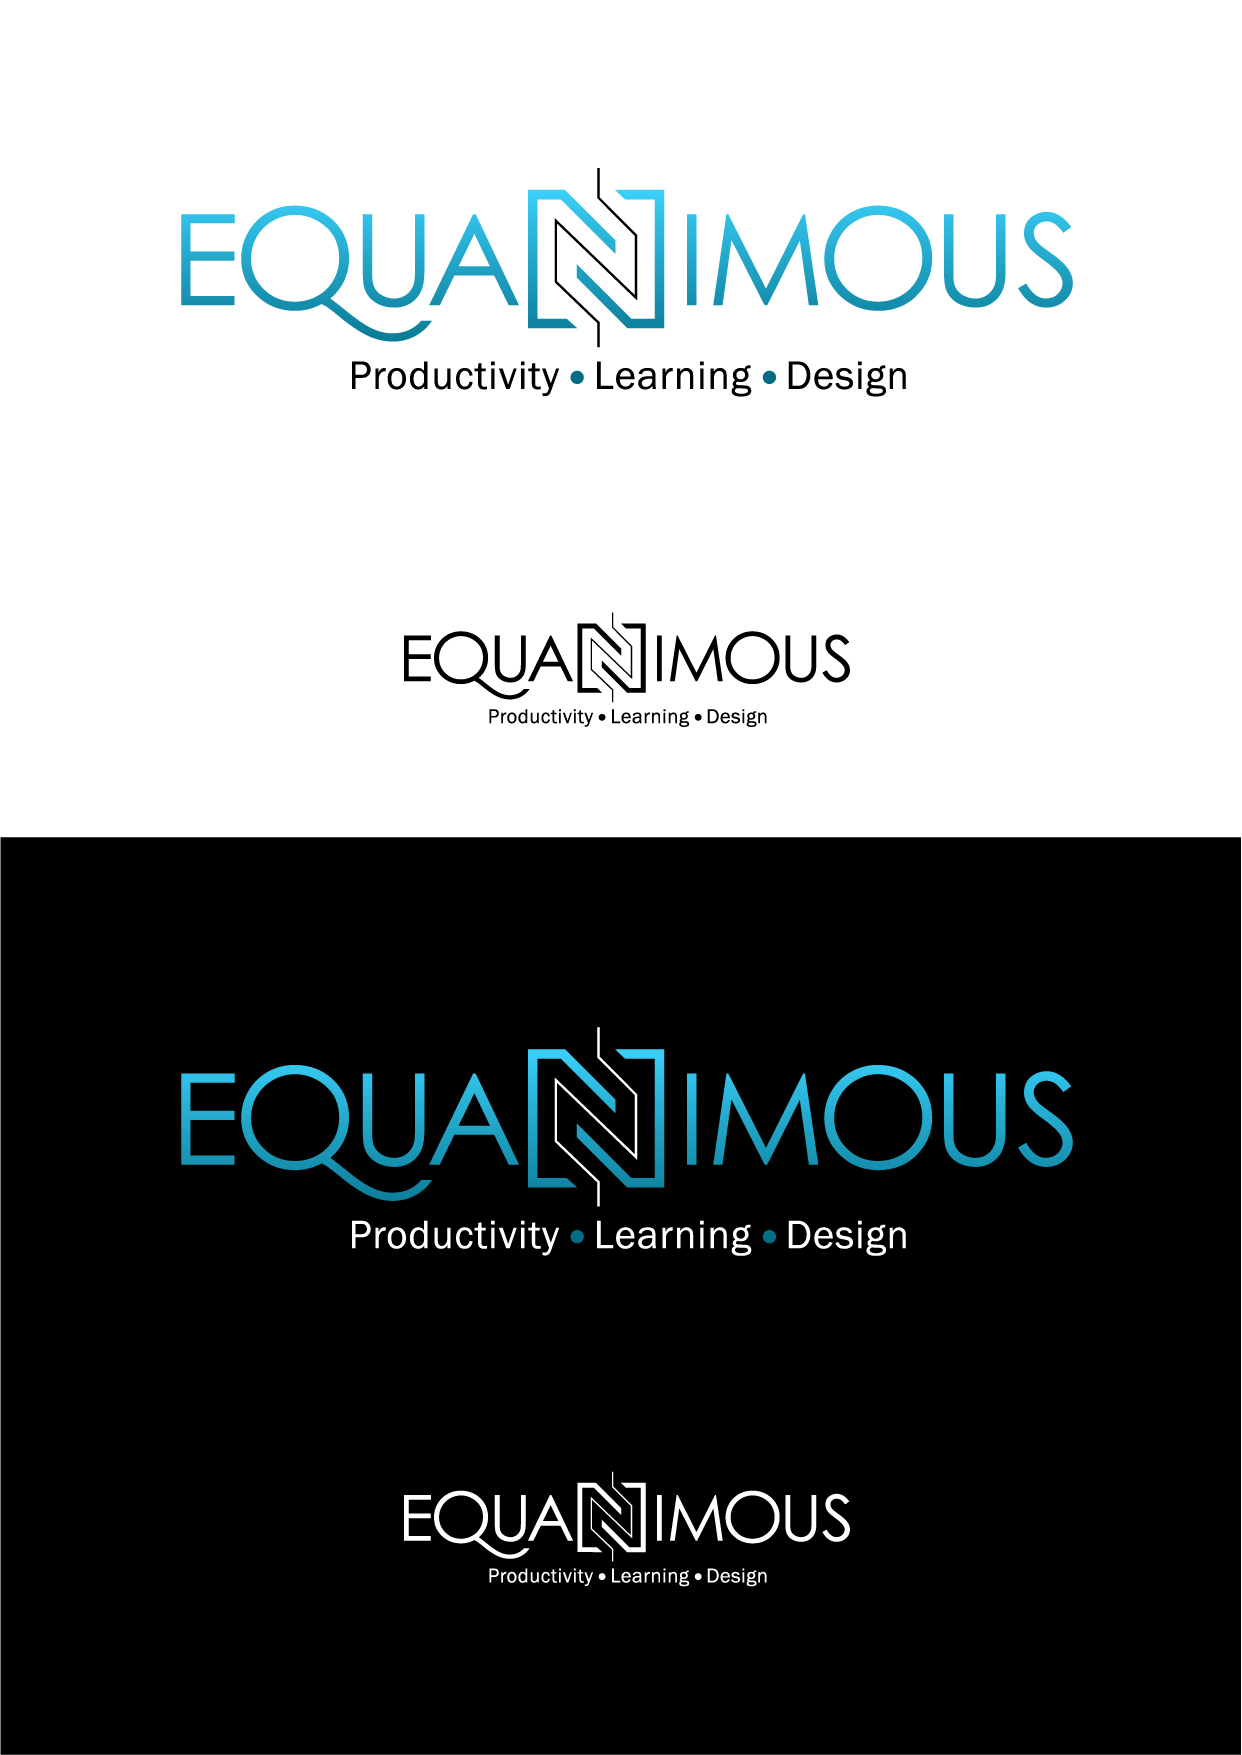 Logo Design by Wilfredo Mendoza - Entry No. 402 in the Logo Design Contest Logo Design : EQUANIMOUS : Productivity | Learning | Design.